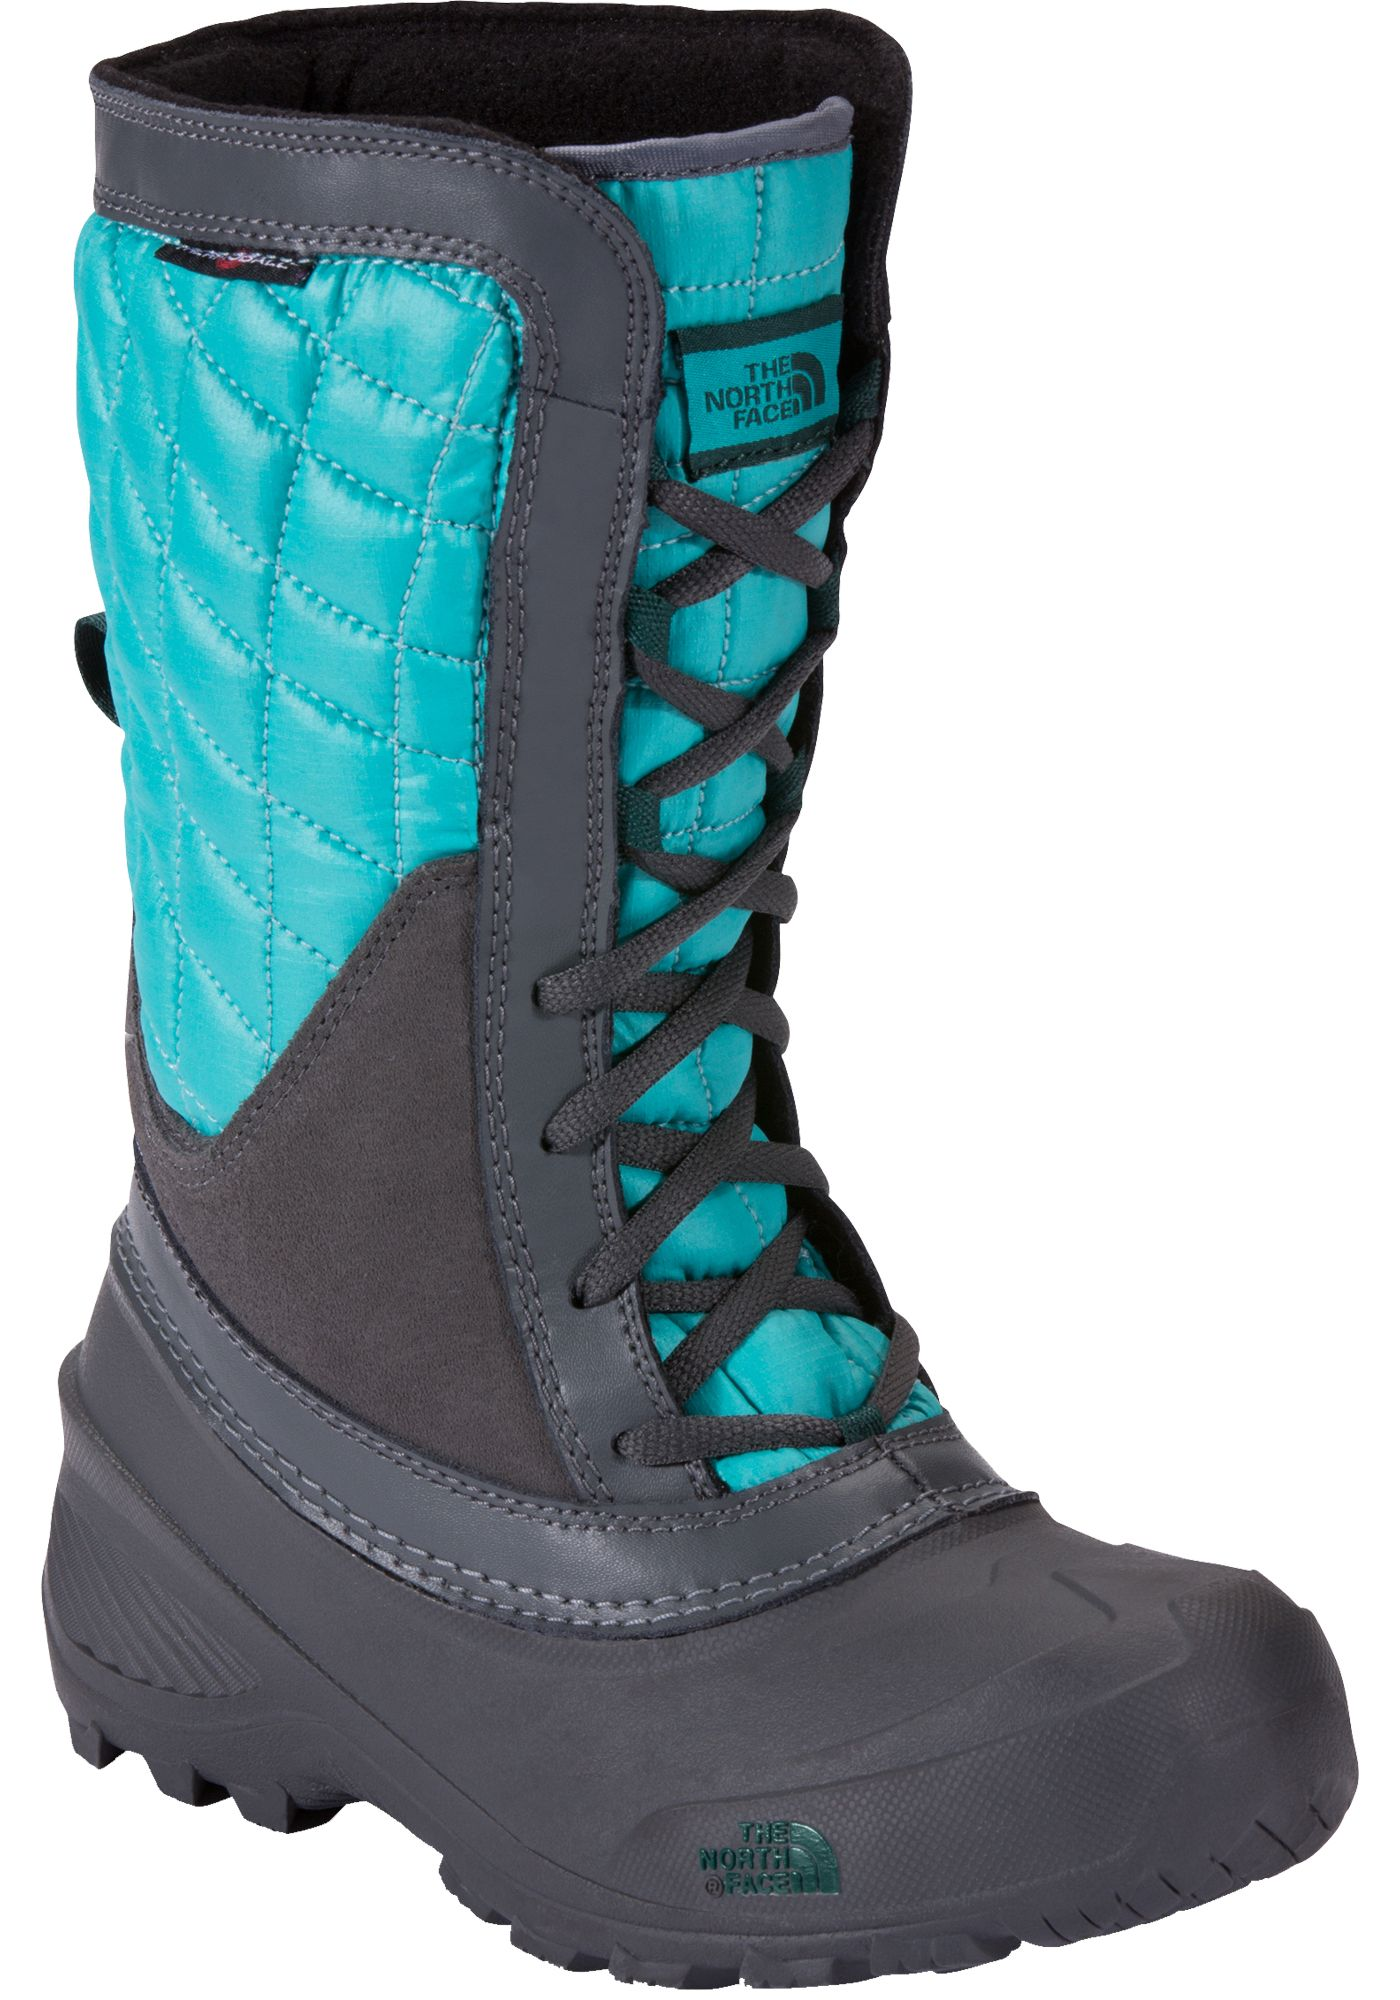 The North Face Kids' Thermoball Shellista 200g Waterproof Winter Boots